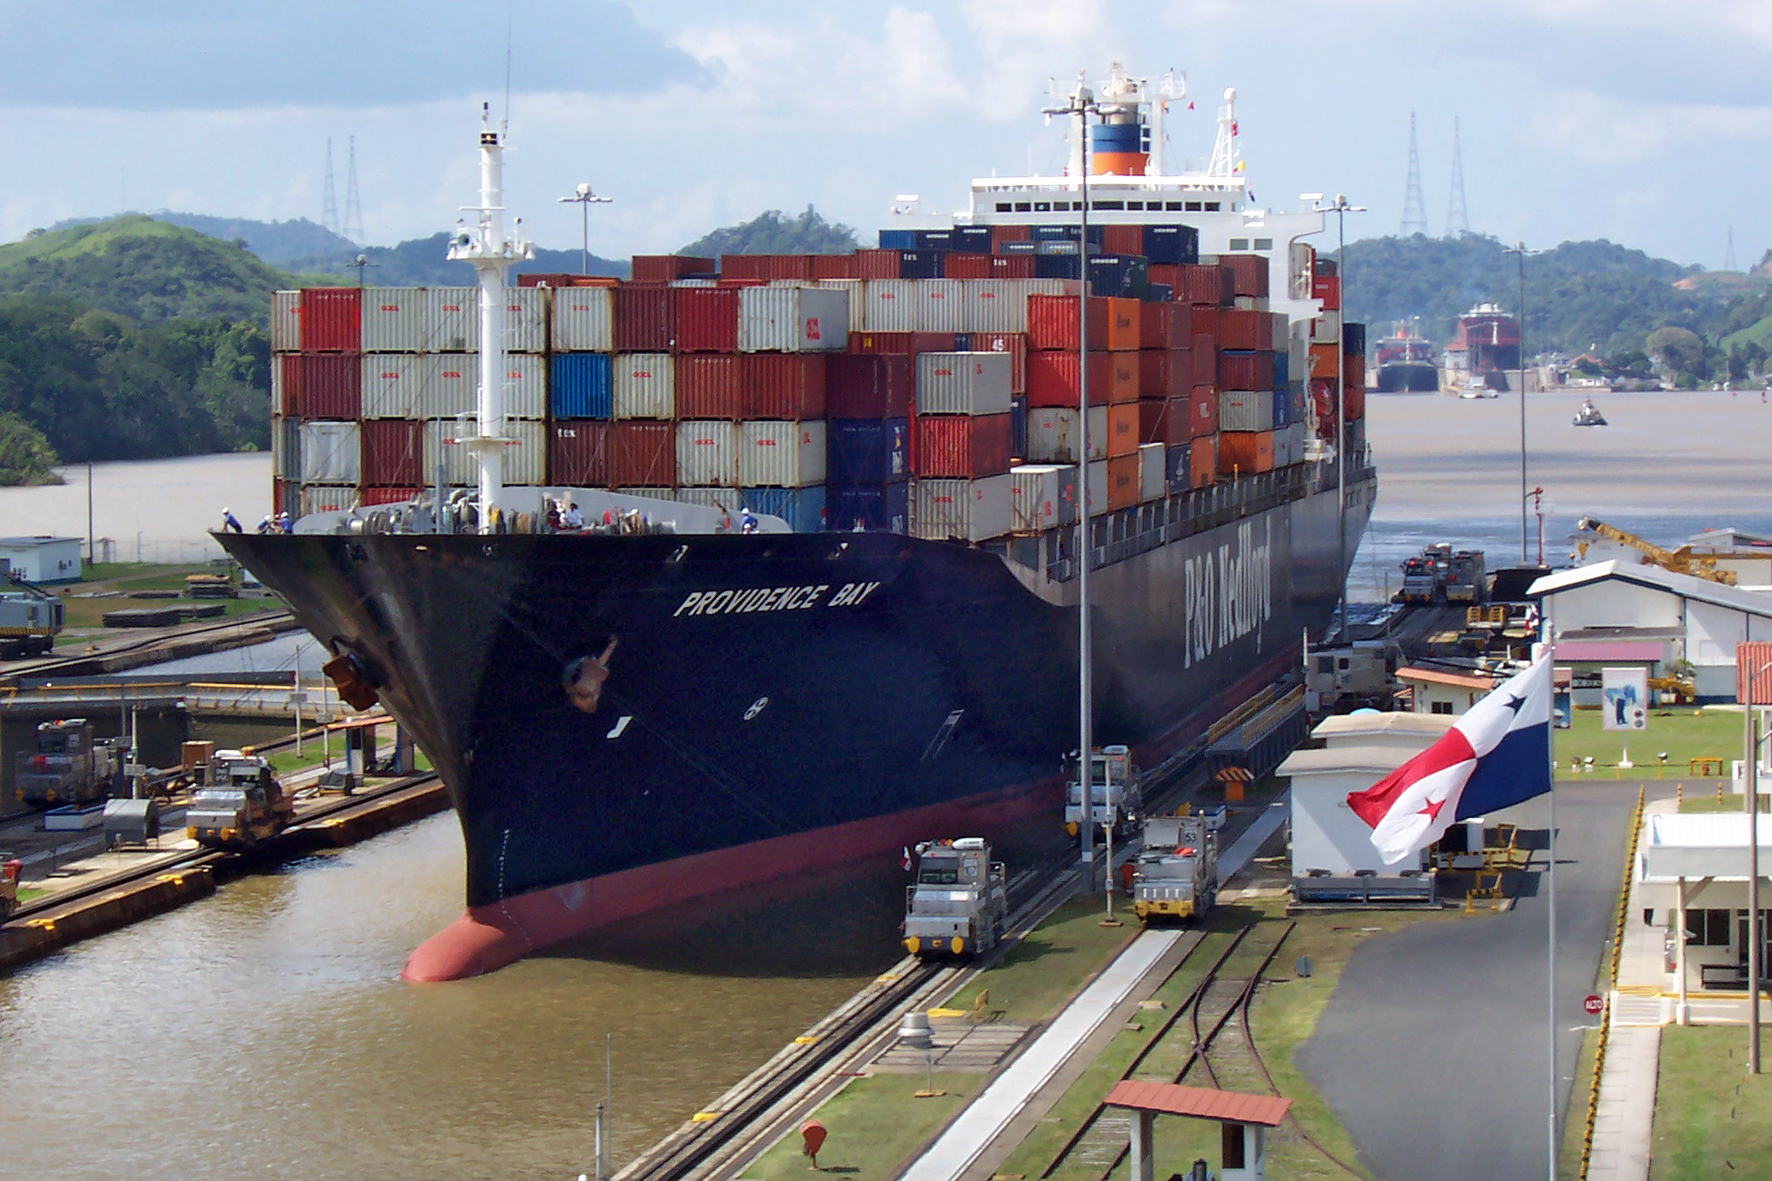 Ship_Providence_Bay_at_panama_canal.jpg